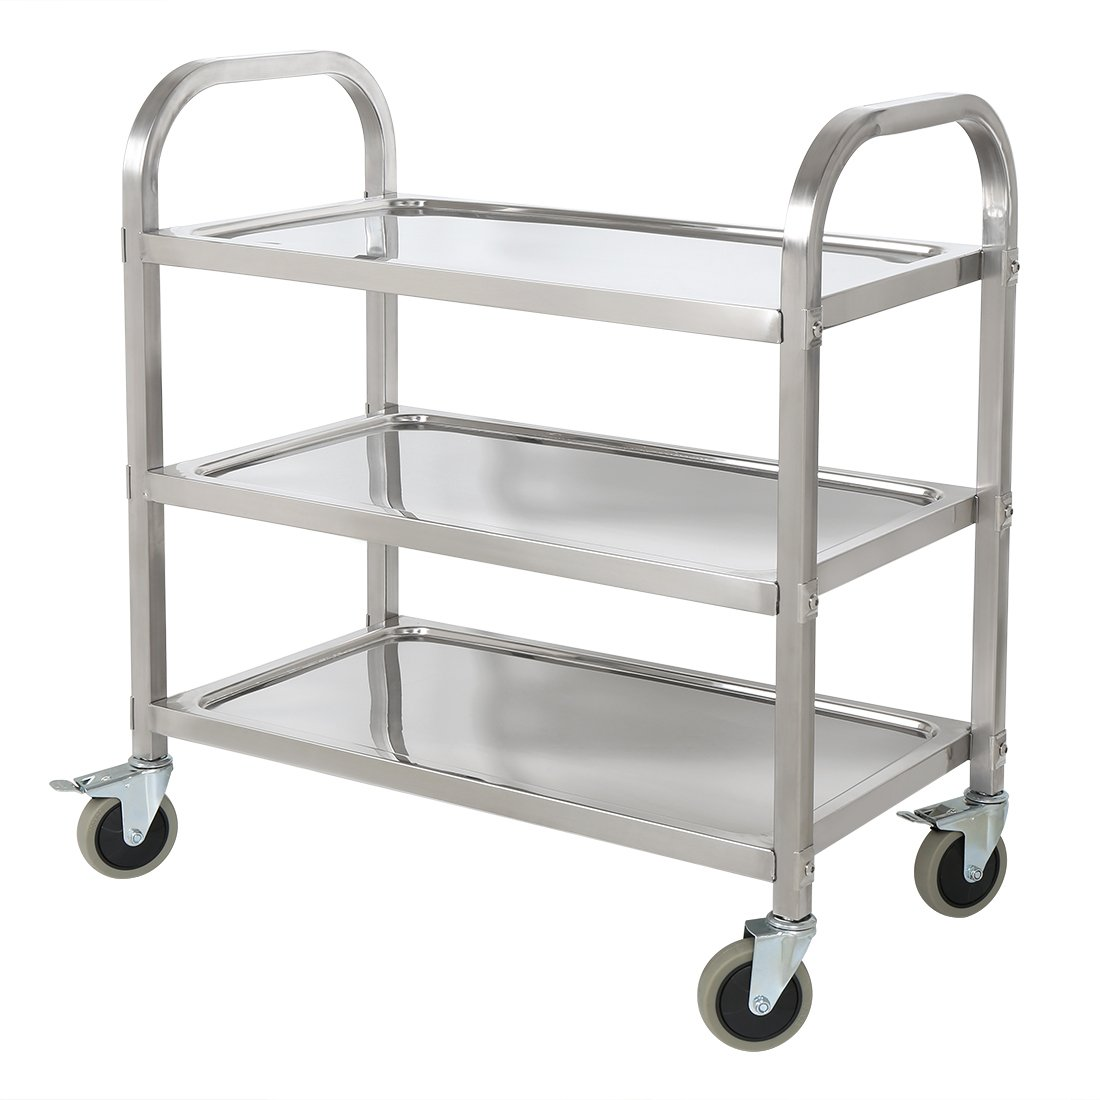 HLC Stainless Steel 3 Tier Kitchen Car Shelf Utility/Service Cart Kitchen Trolley Kitchen Cart with Wheels 75 x 40 x 83.5CM